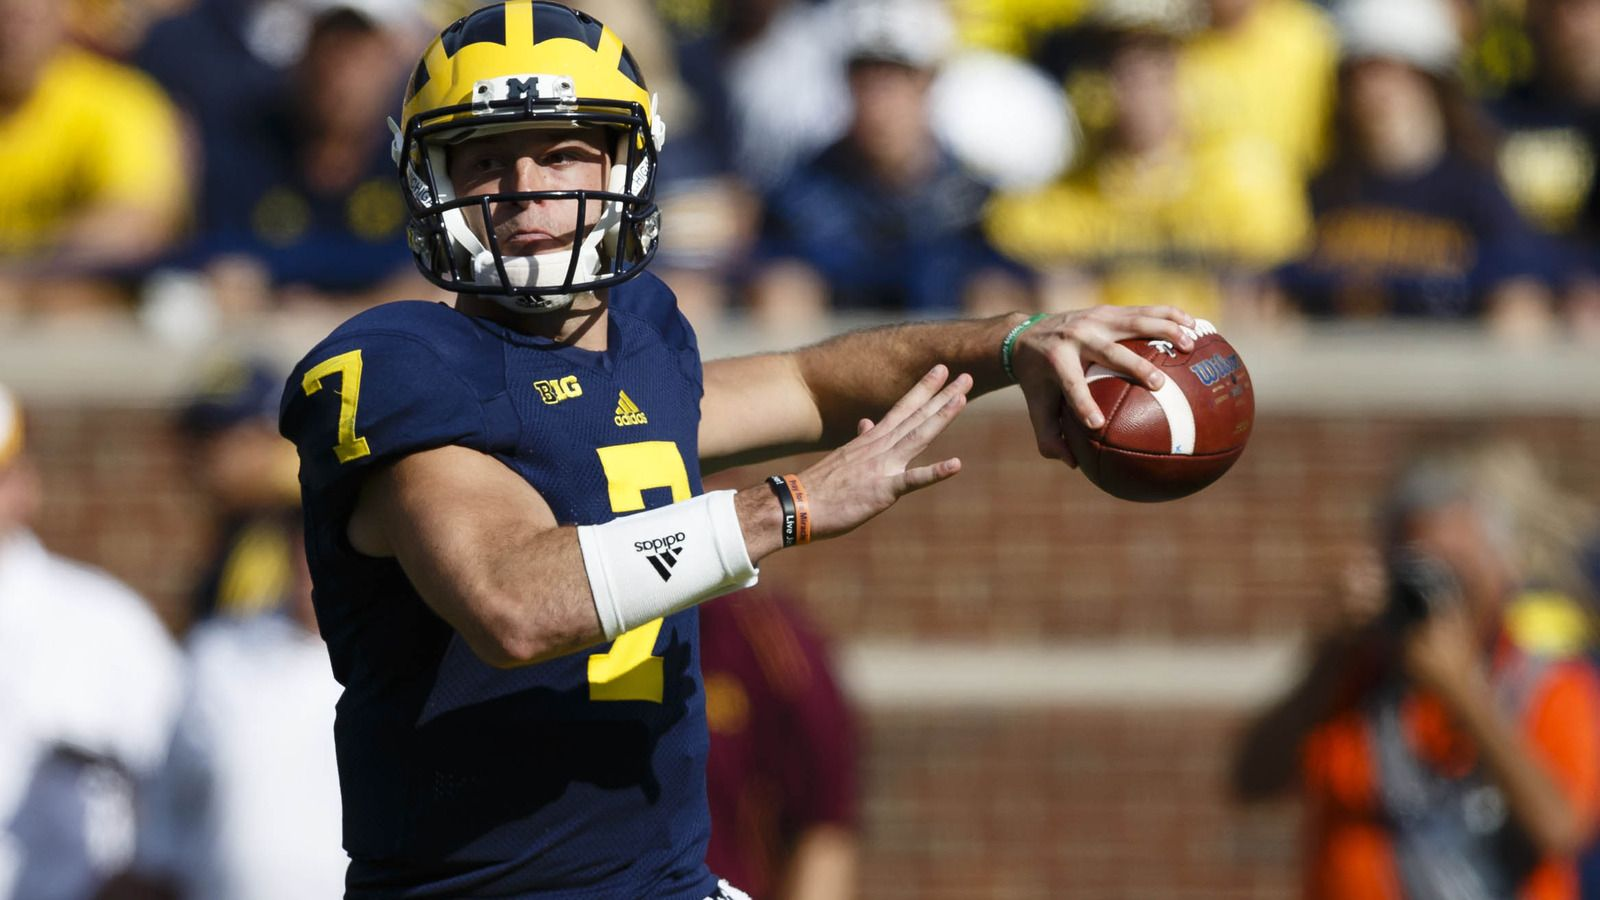 Harbaugh named starting QB but won't announce it